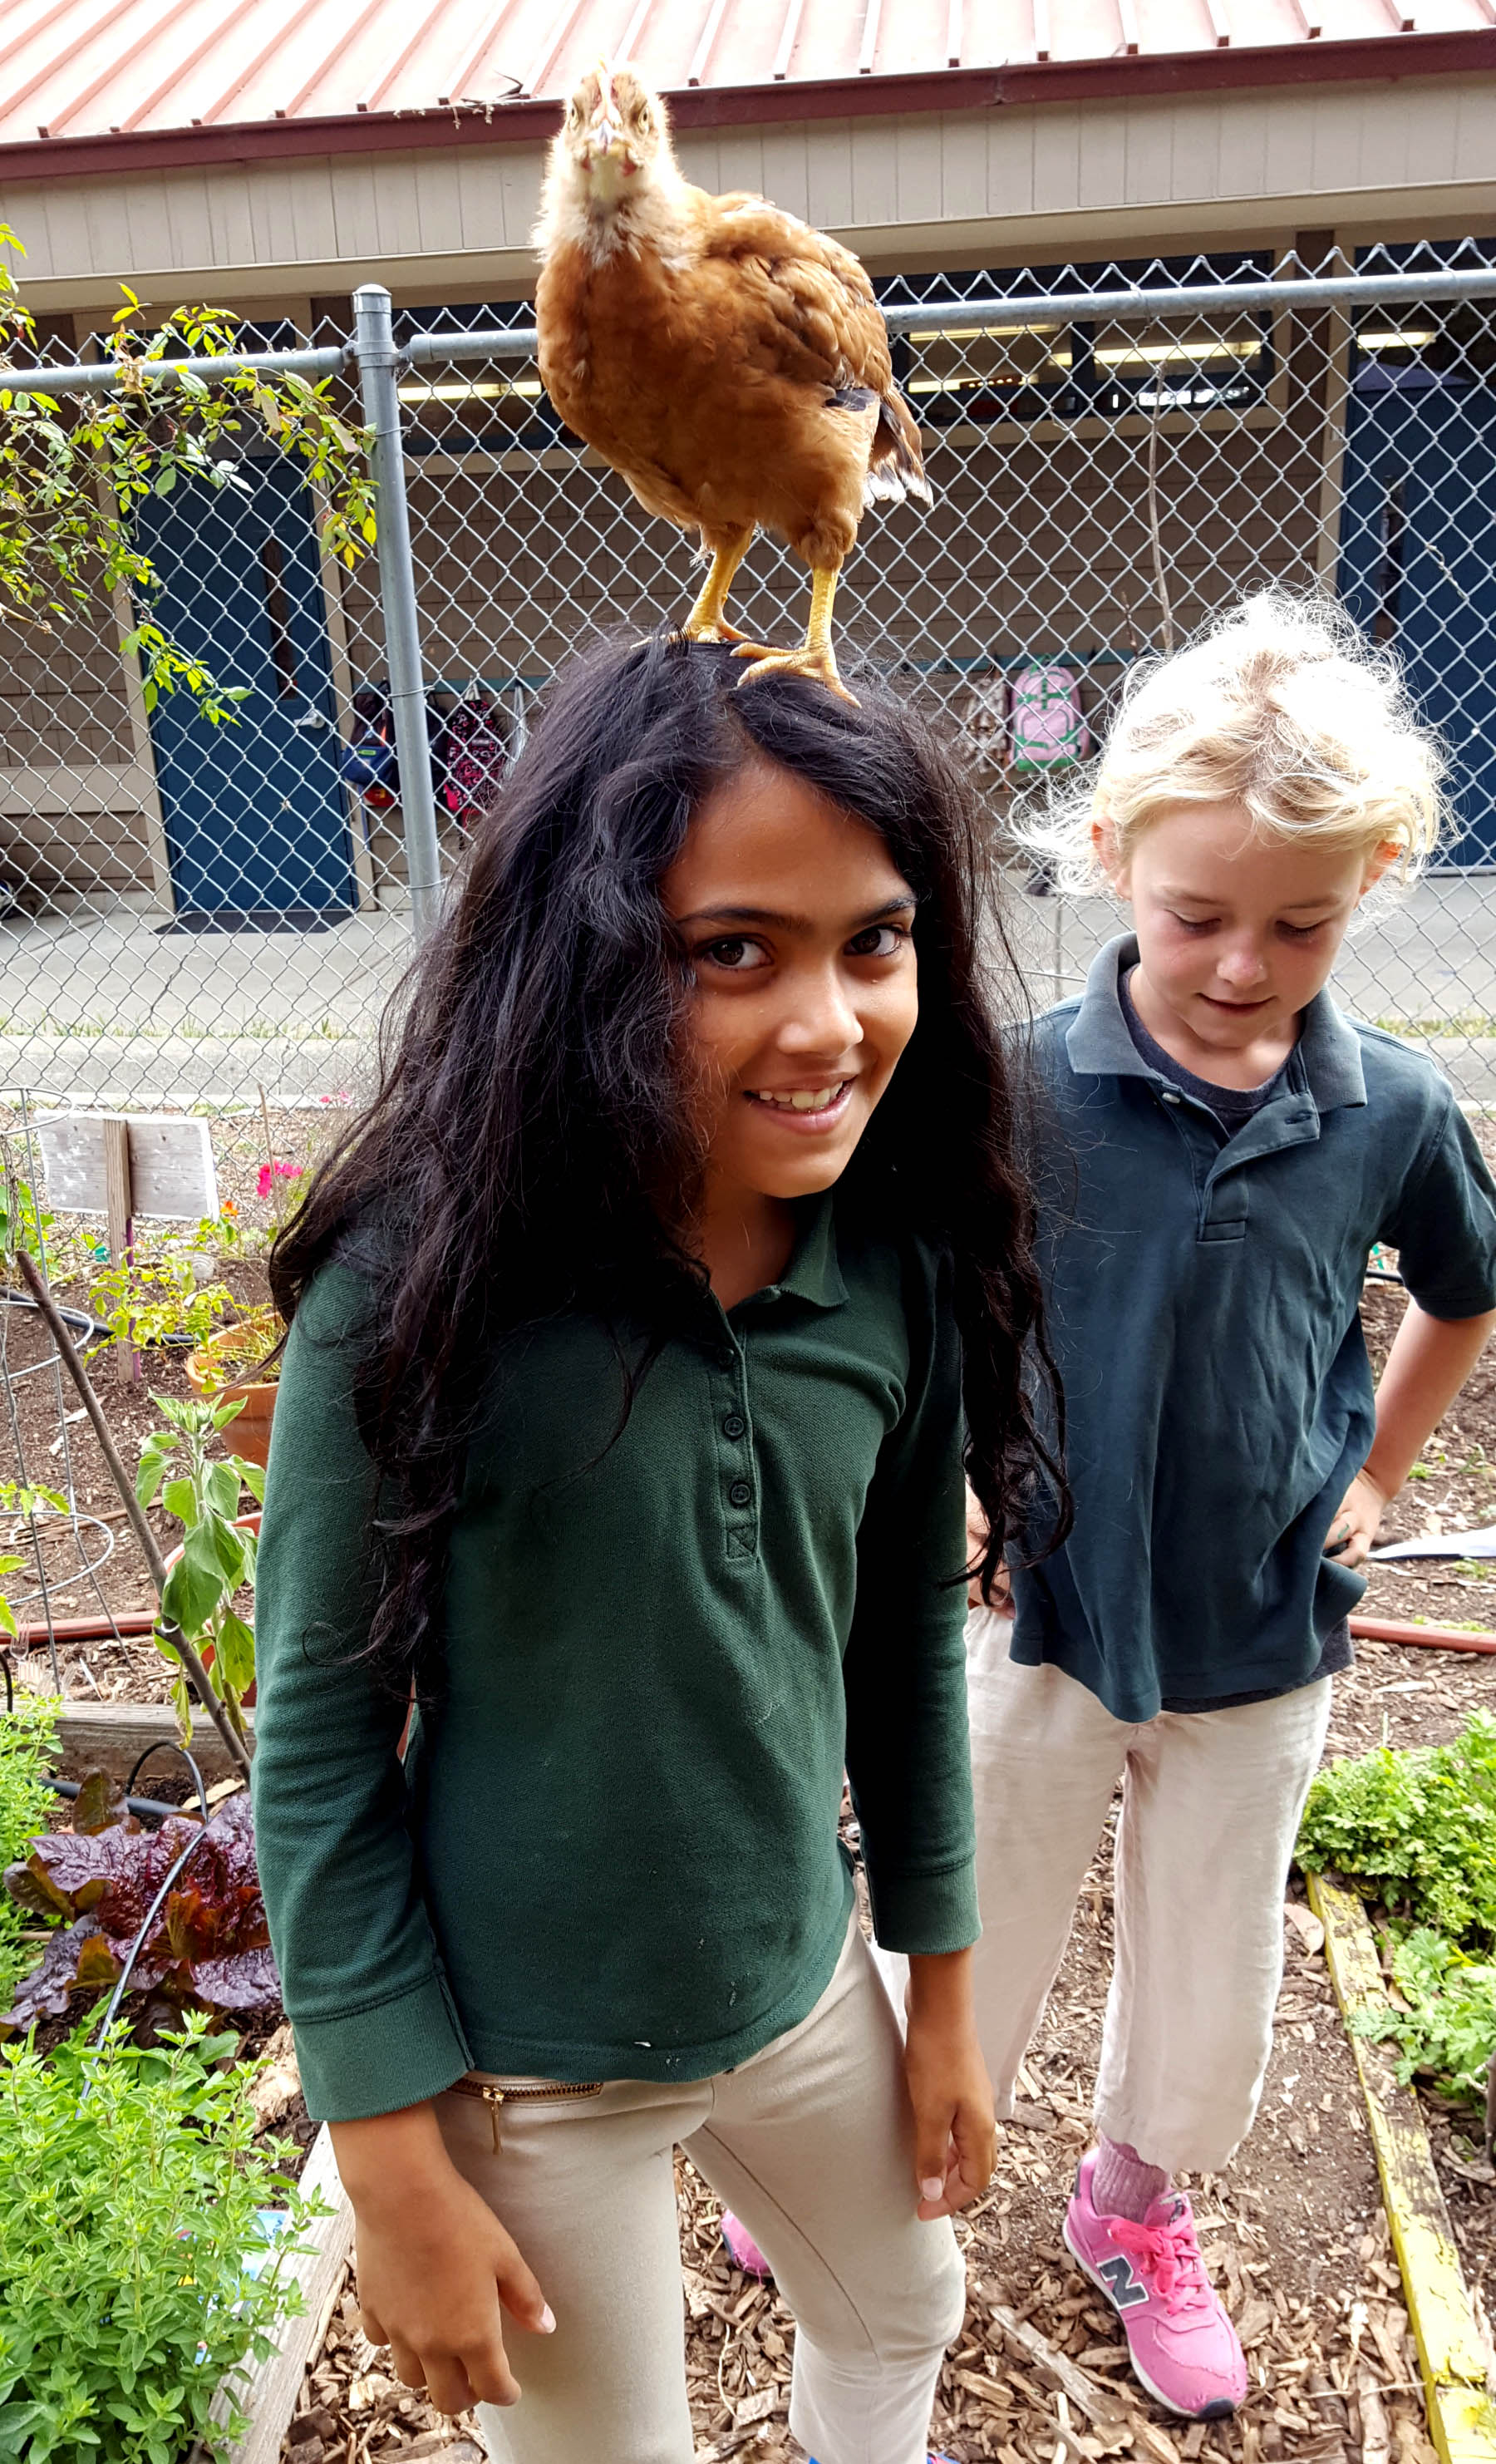 chickens_chicks_week4_amani_copper_edited